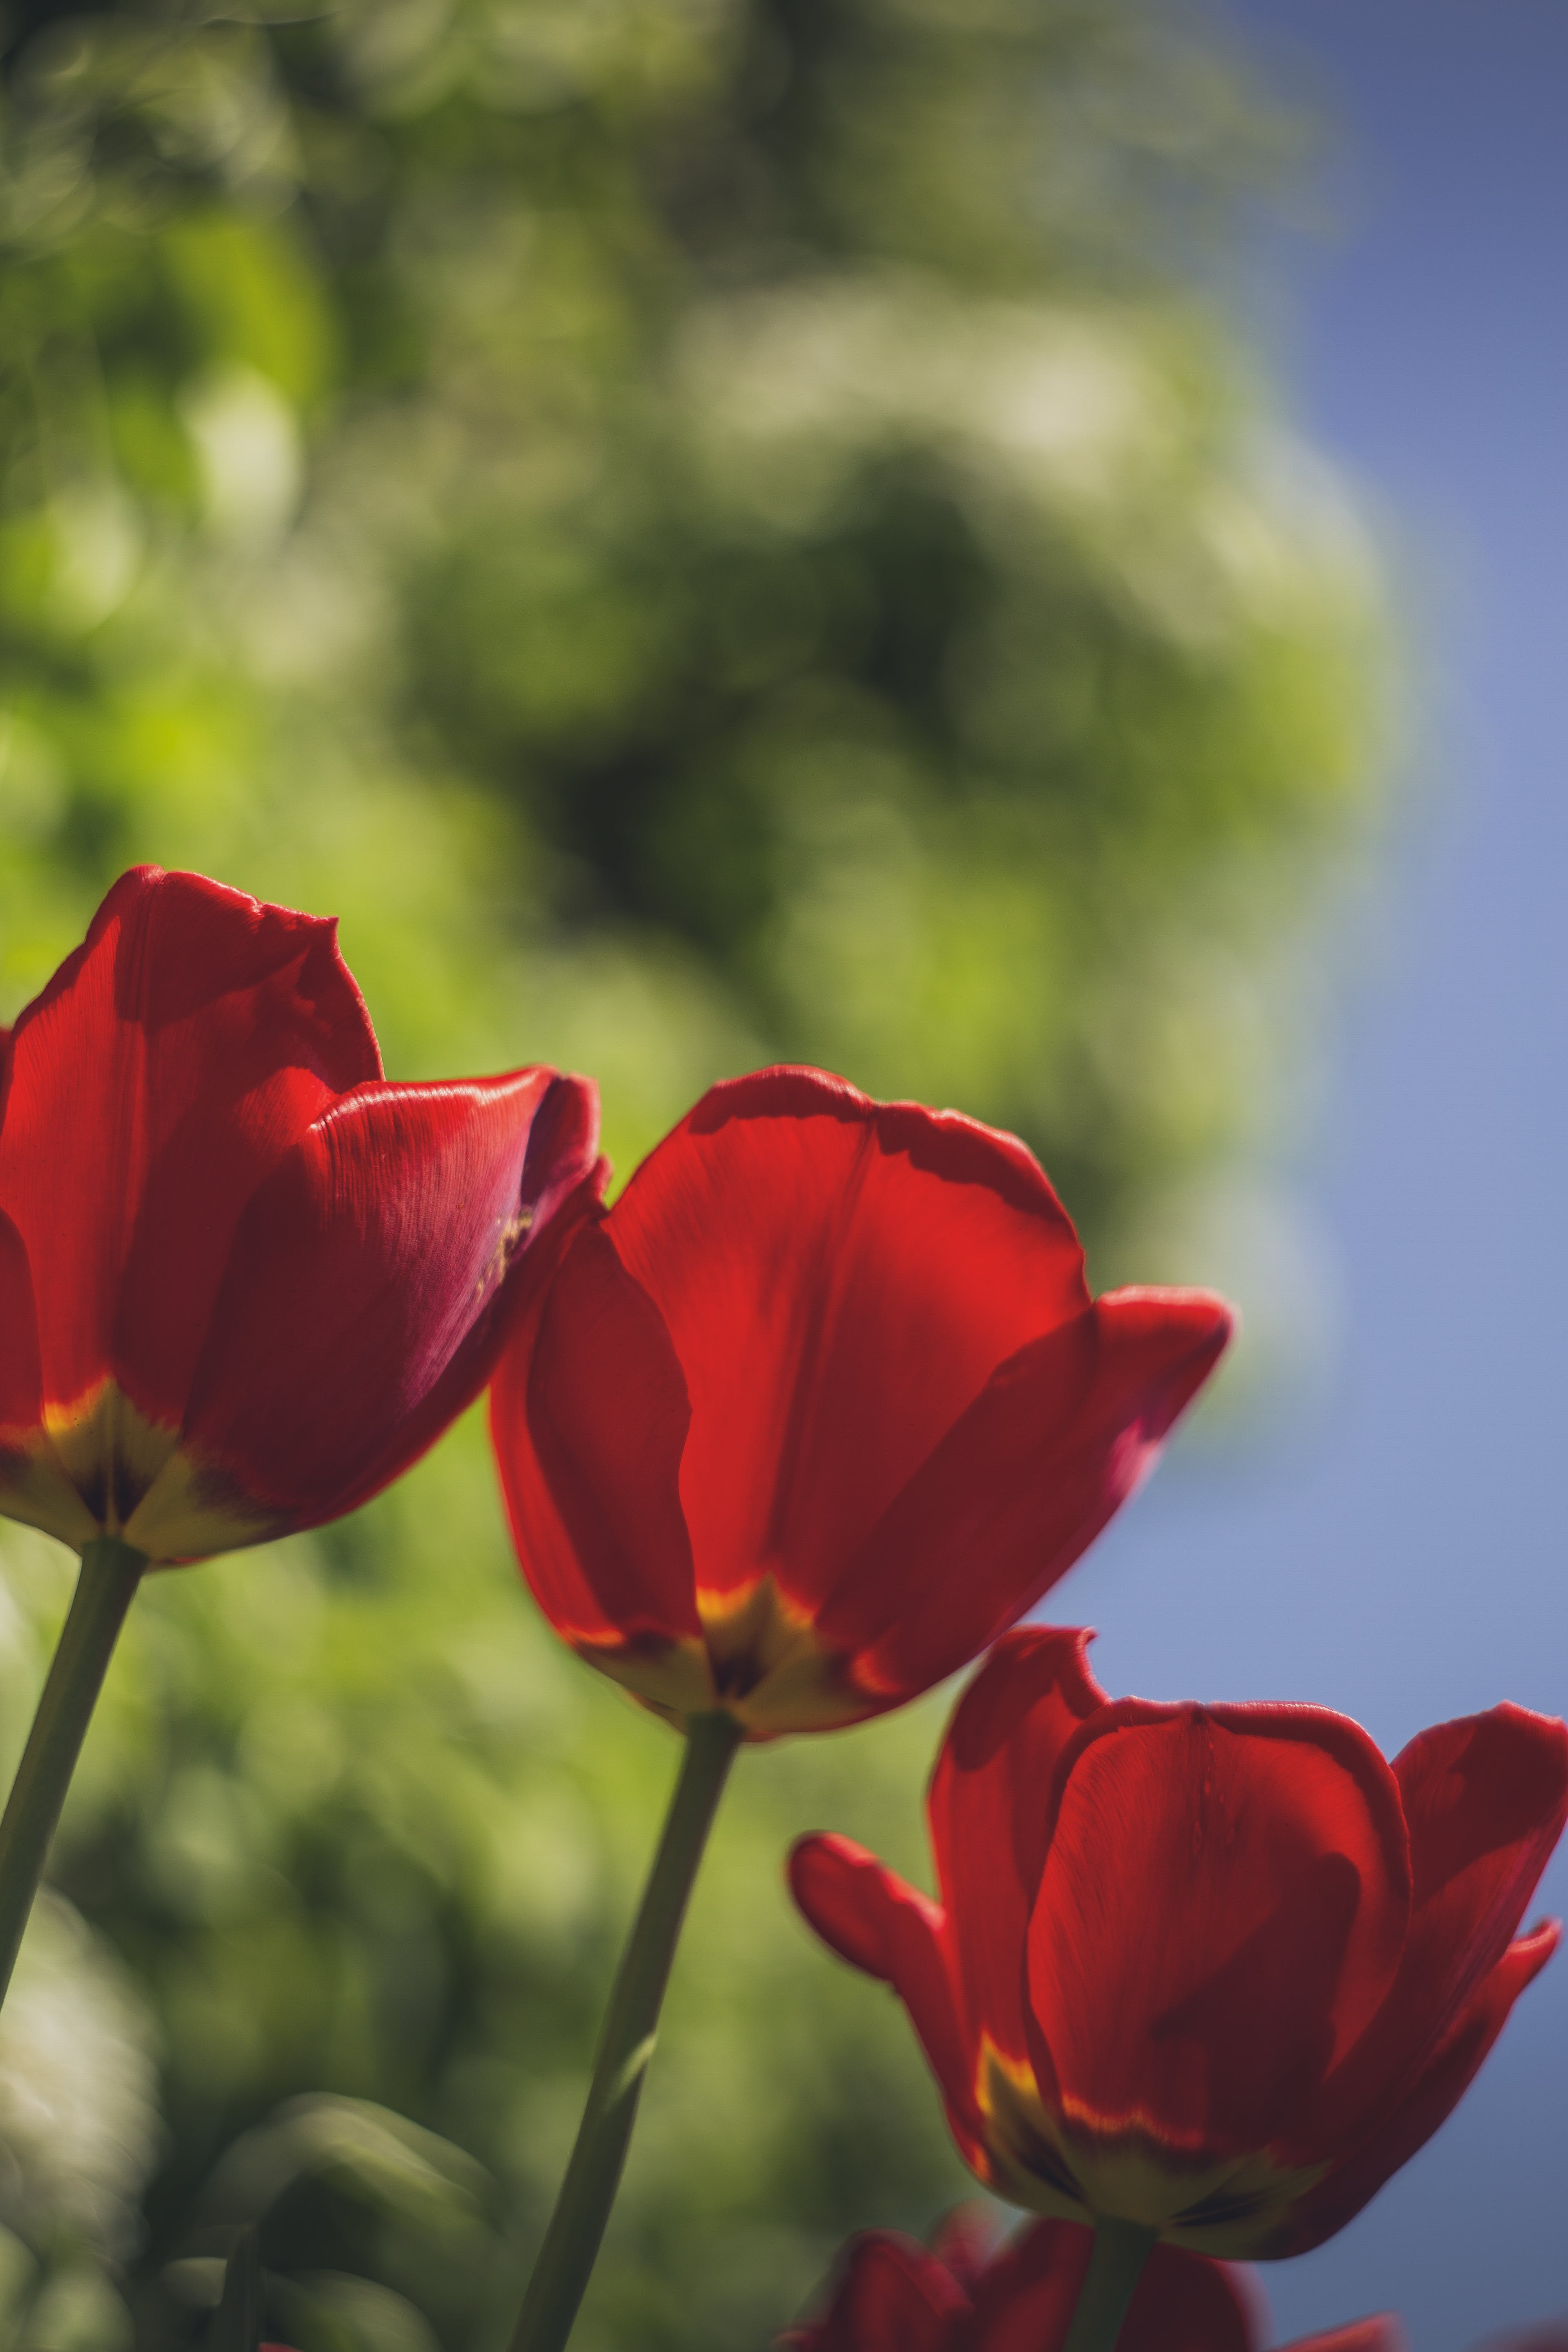 Selective Focus Photo of Three Red Rose Flowers